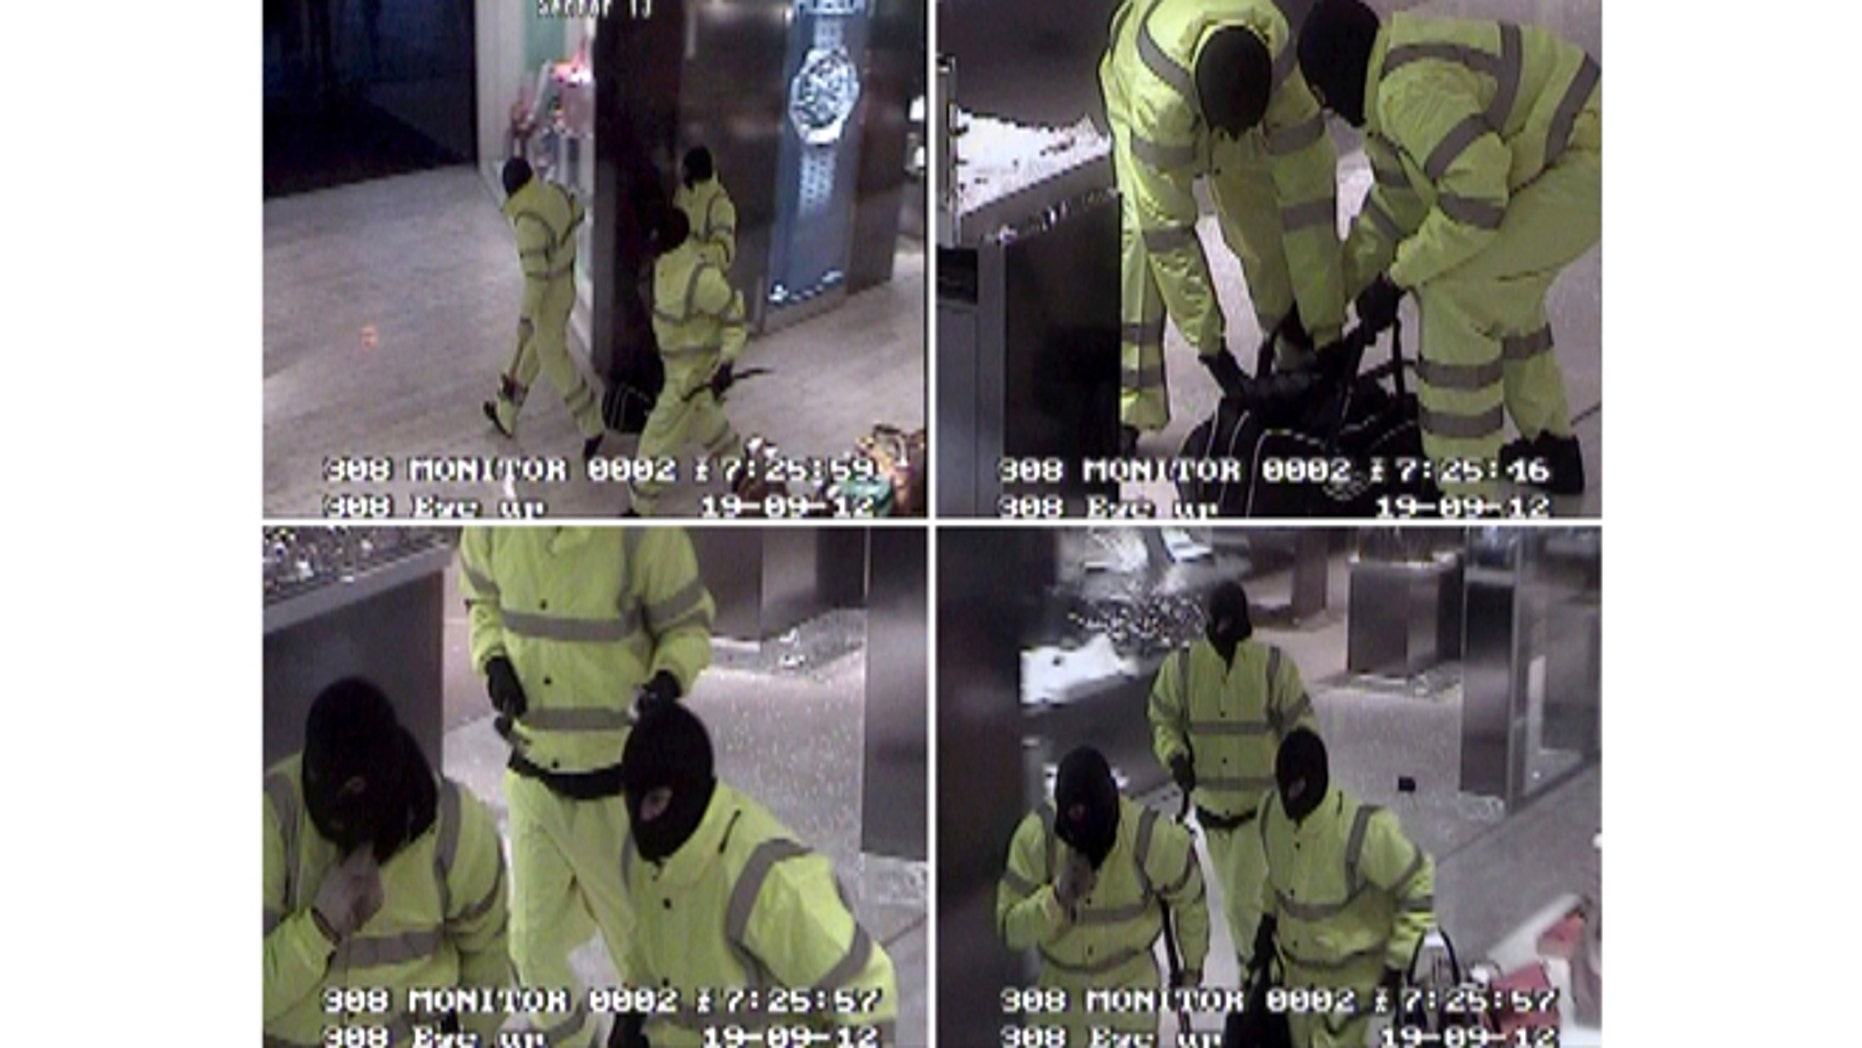 Sept. 19, 2012: Greater Manchester Police handout CCTV stills showing masked raiders stealing a 500,000 pounds ($810,000) haul of luxury watches from high end department store Selfridges in Manchester, northern England.